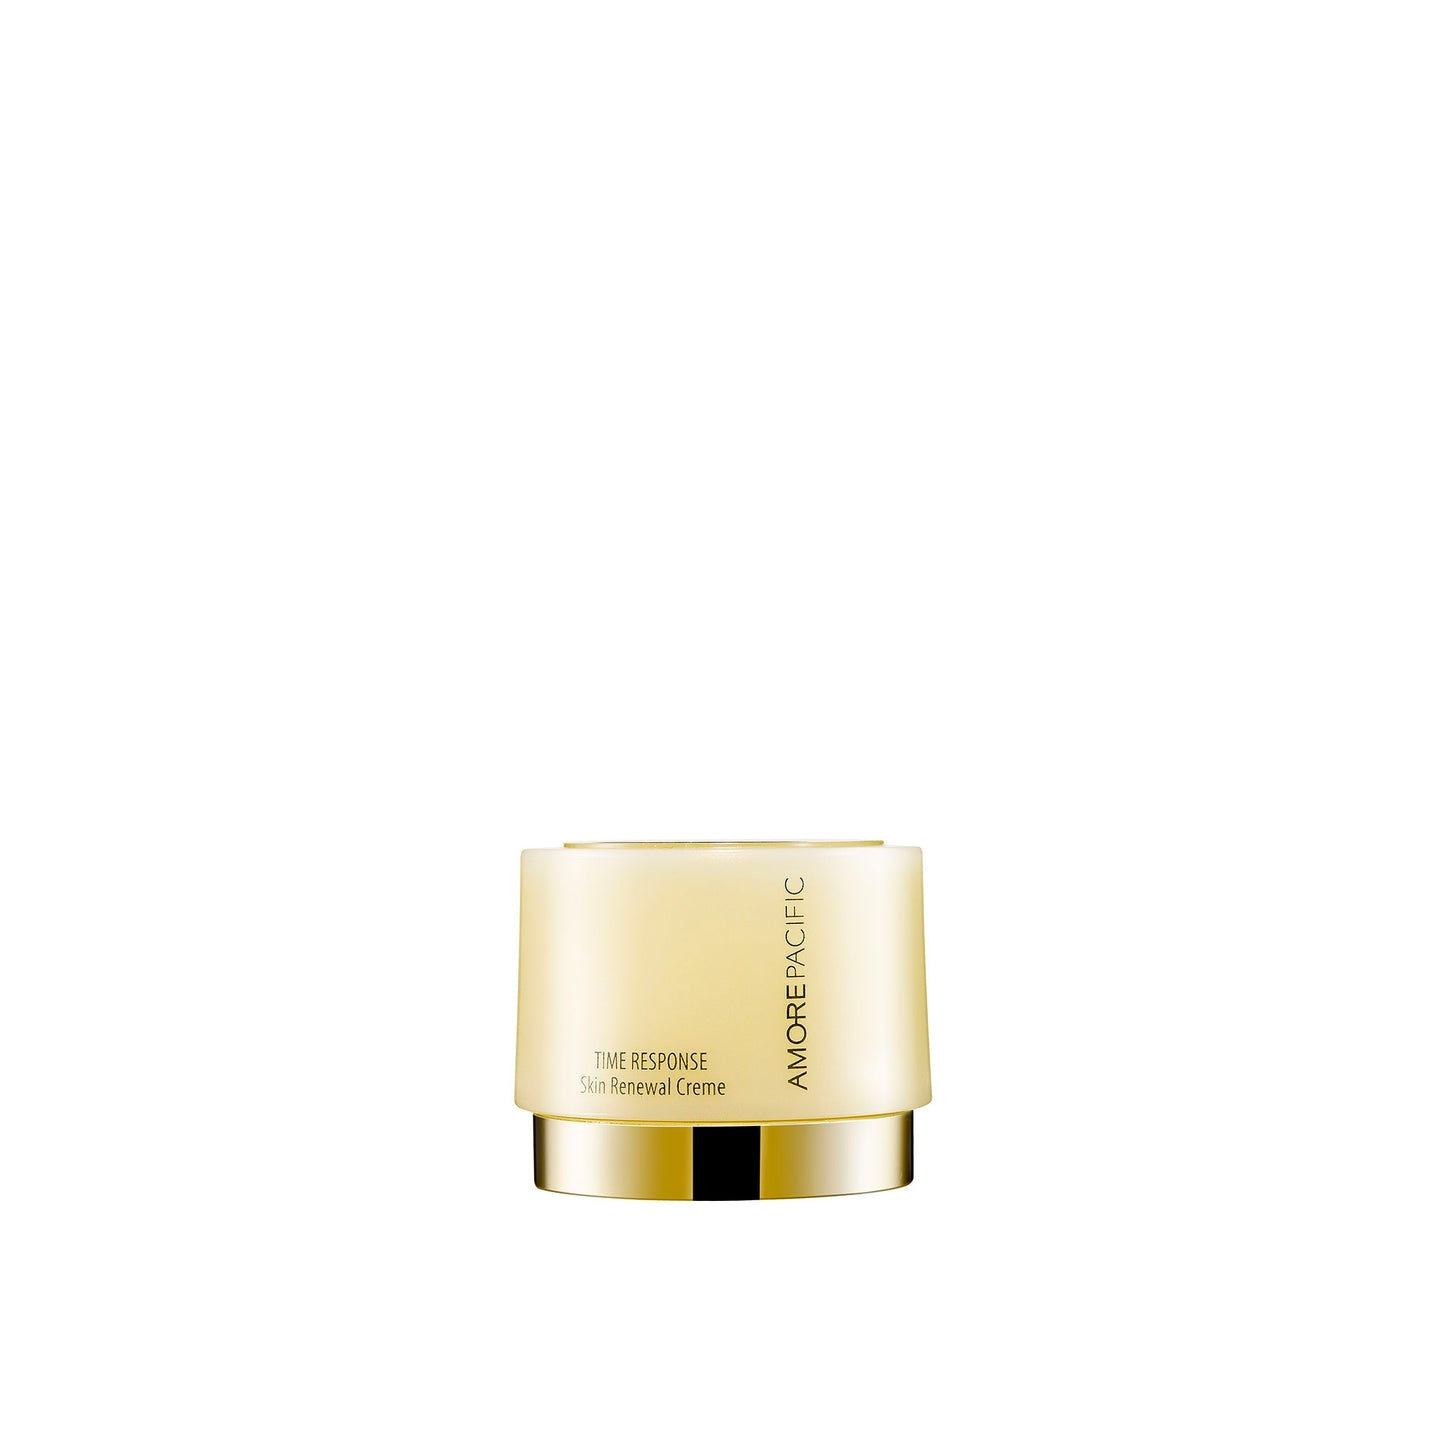 Time Response Skin Renewal Creme 8ML